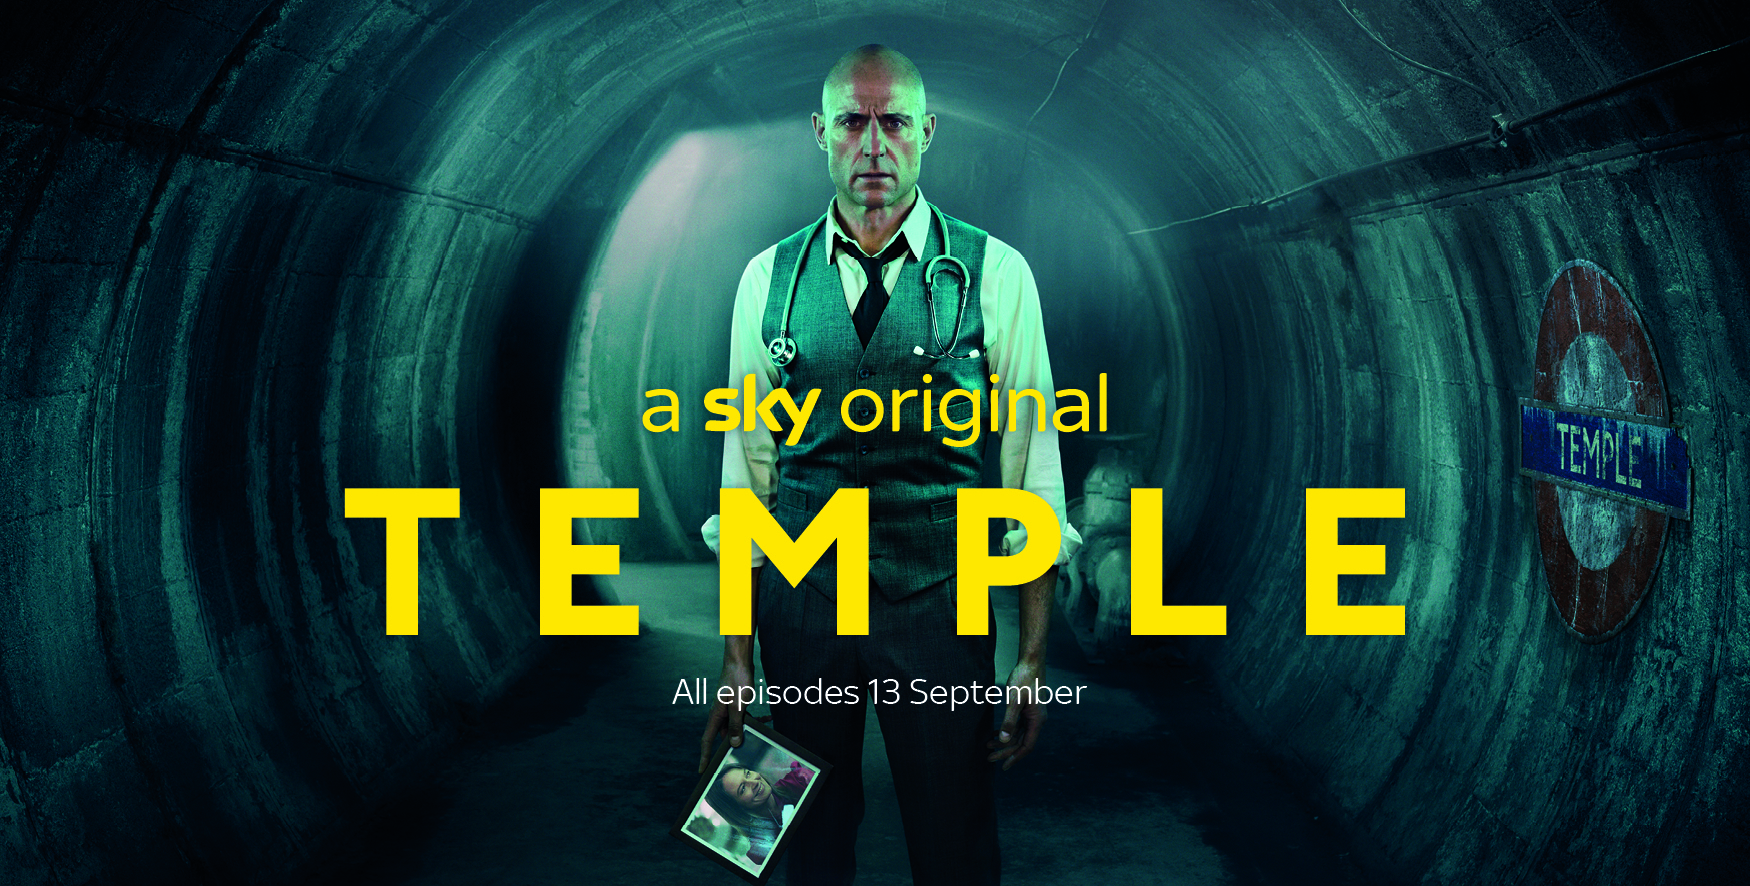 Sky One 'Temple' Key Art by Nadav Kander